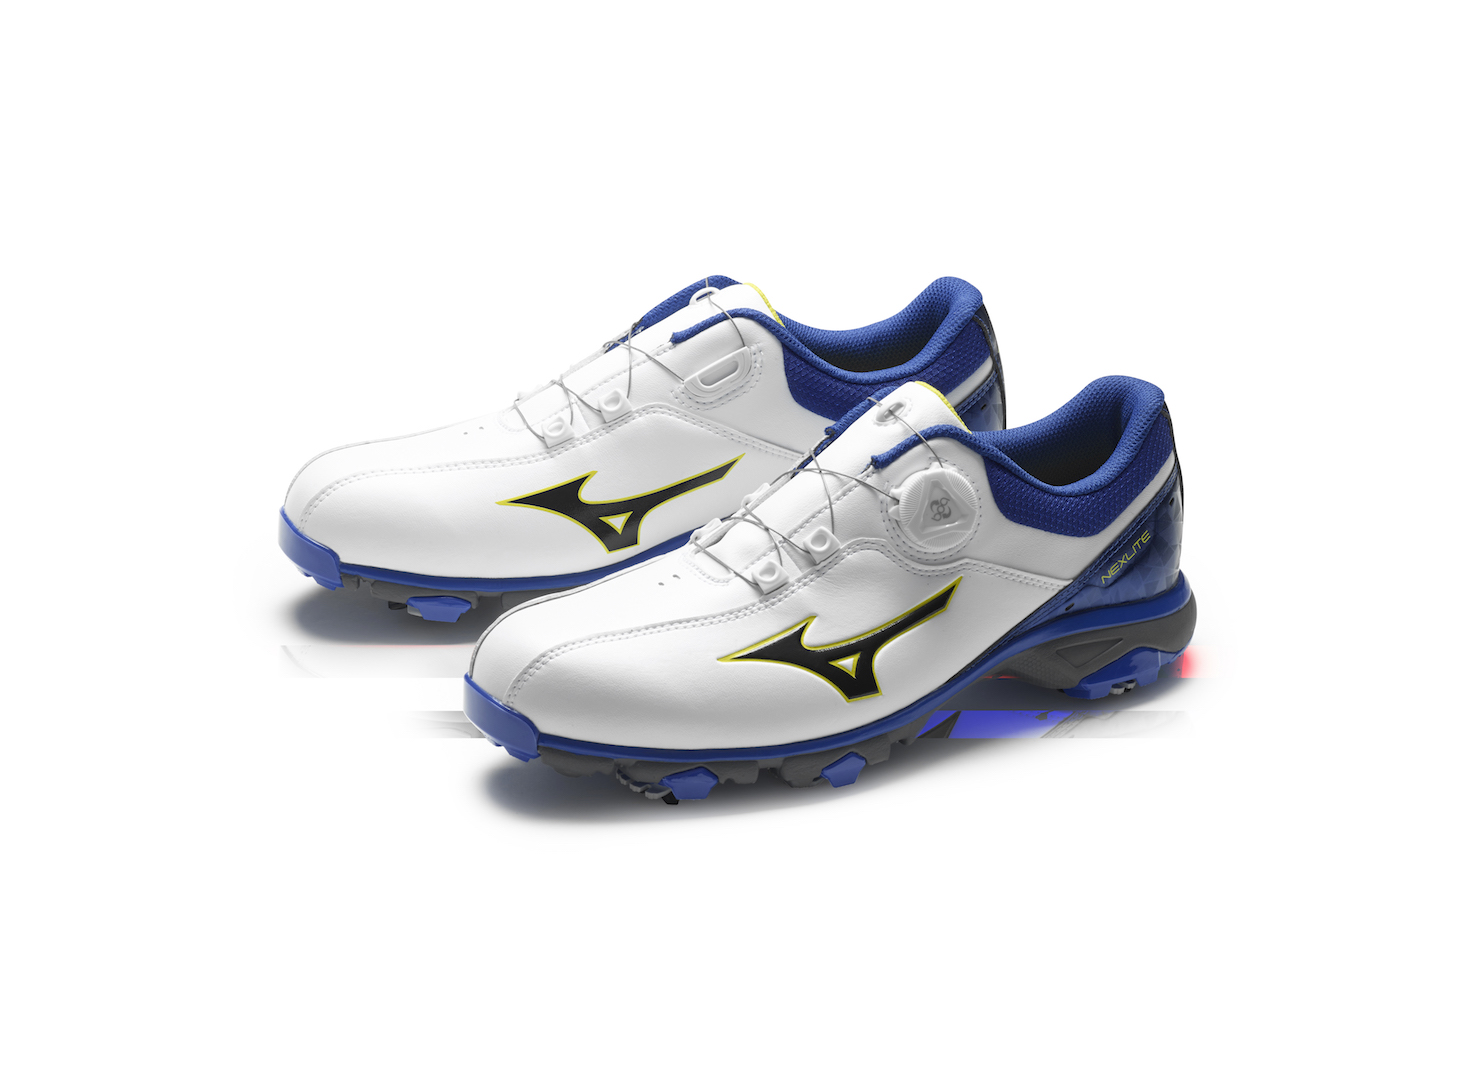 Mizuno introduces new Ultralight Nexlite Boa 005 shoe